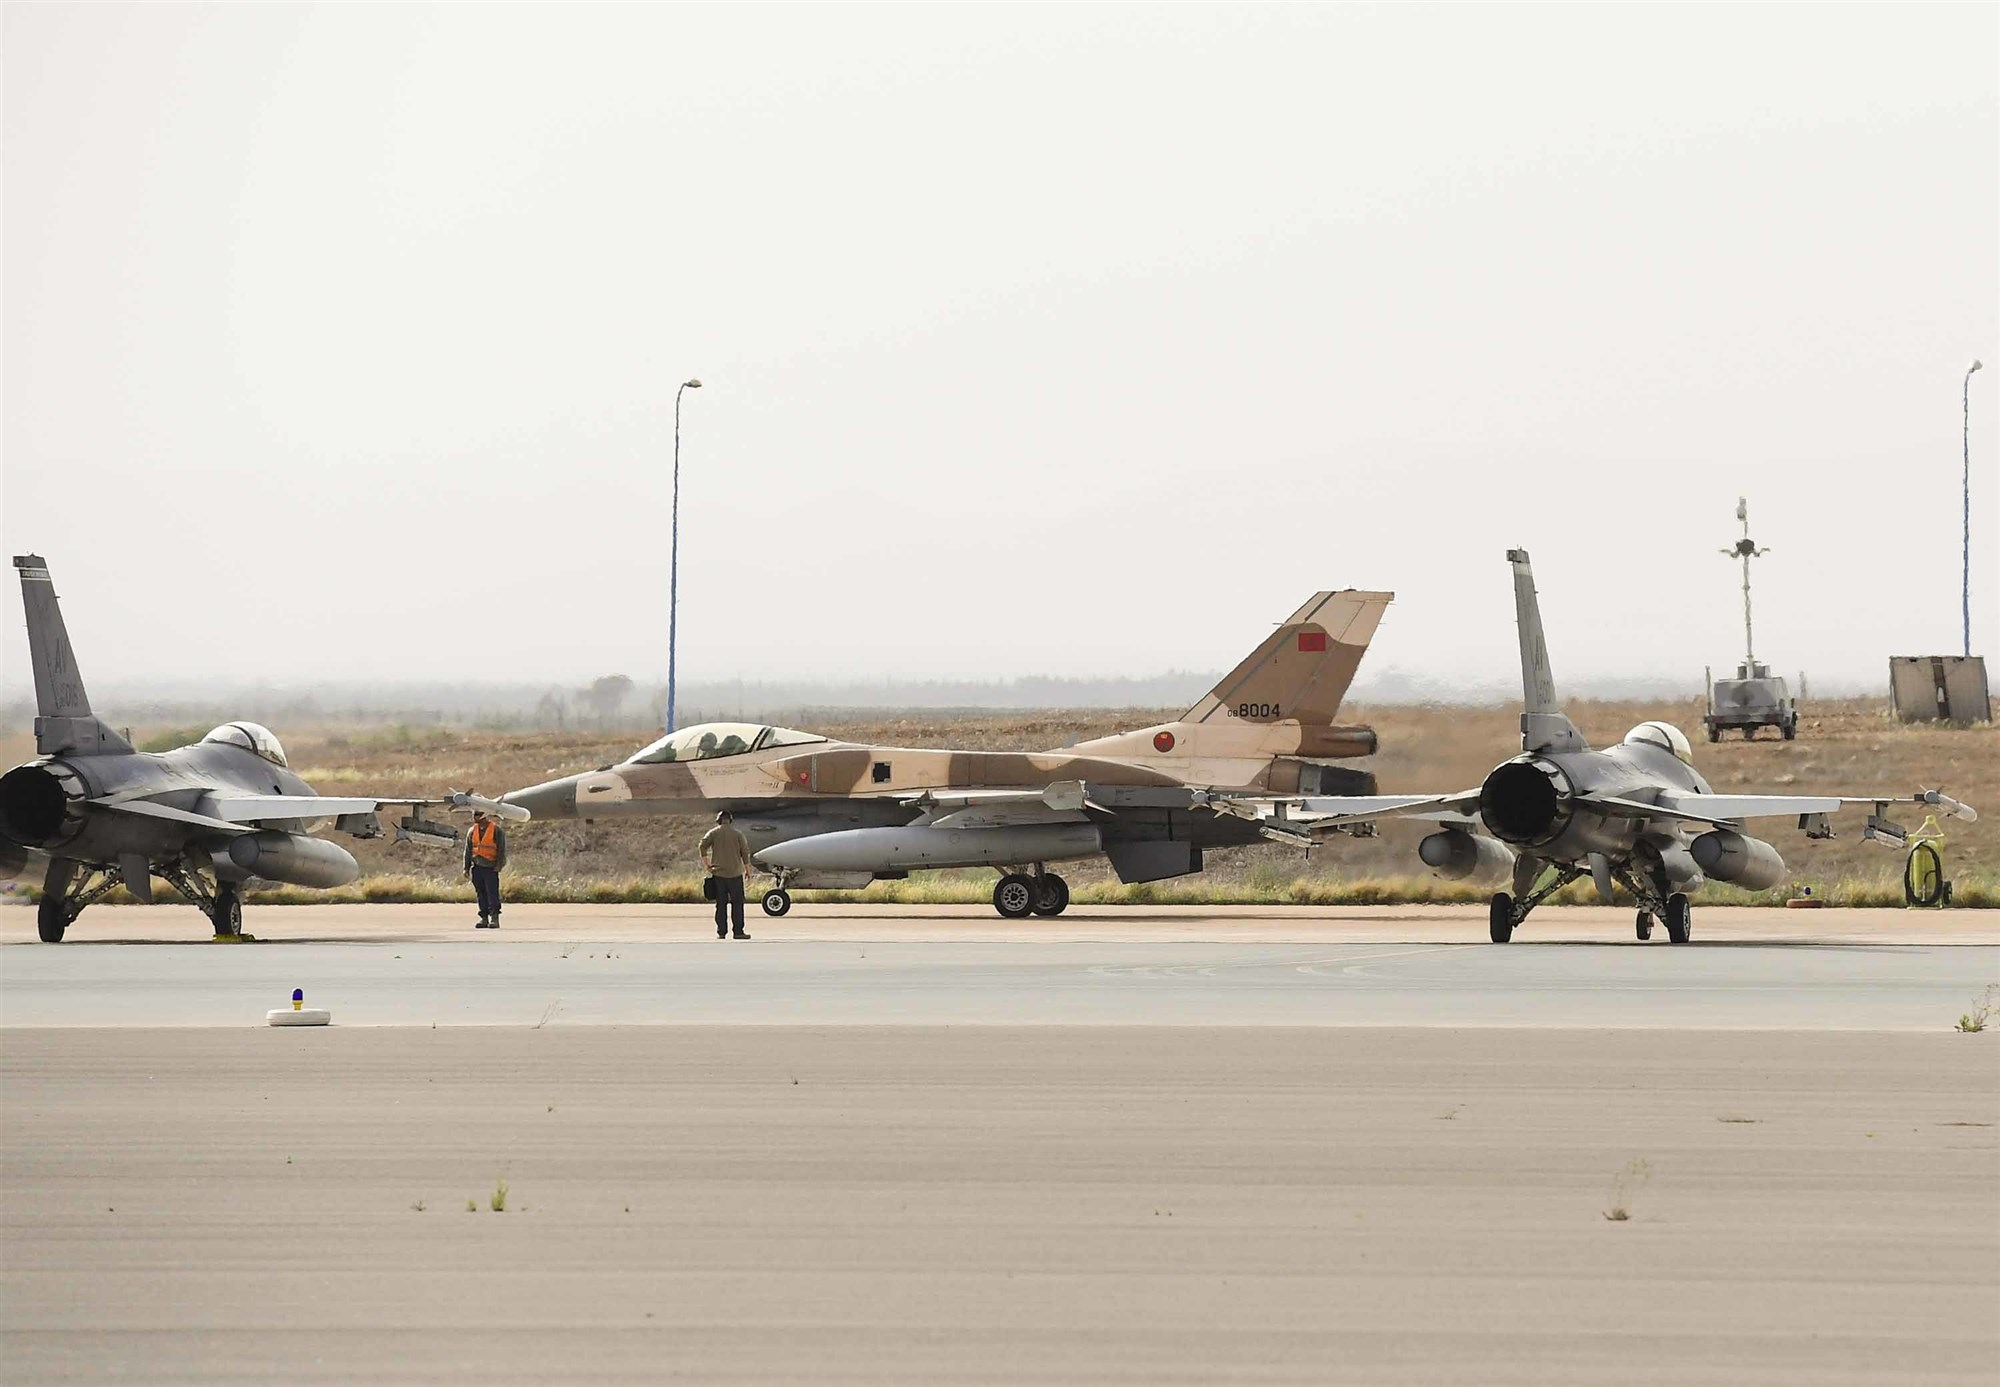 A Royal Moroccan Air Force F-16 taxis past two F-16C Fighting Falcons from the 555th Expeditionary Fighter Squadron during exercise African Lion 2019 at Ben Guerir Air Base, Morocco, March 25, 2019. During the exercise, U.S. and Moroccan F-16s conducted tactical training, reinforcing the long-standing relationship between the two countries and enhancing bilateral security cooperation. African Lion 2019 is a Chairman of the Joint Chiefs of Staff-sponsored, U.S. Africa Command-scheduled, U.S. Marine Corps Forces Europe and Africa-led, joint and combined exercise conducted in the Kingdom of Morocco with a spoke in Tunisia, and armed forces participants in from Canada, France, Senegal, Spain, and the United Kingdom. (U.S. Air Force photo by Staff Sgt. Ceaira Tinsley)